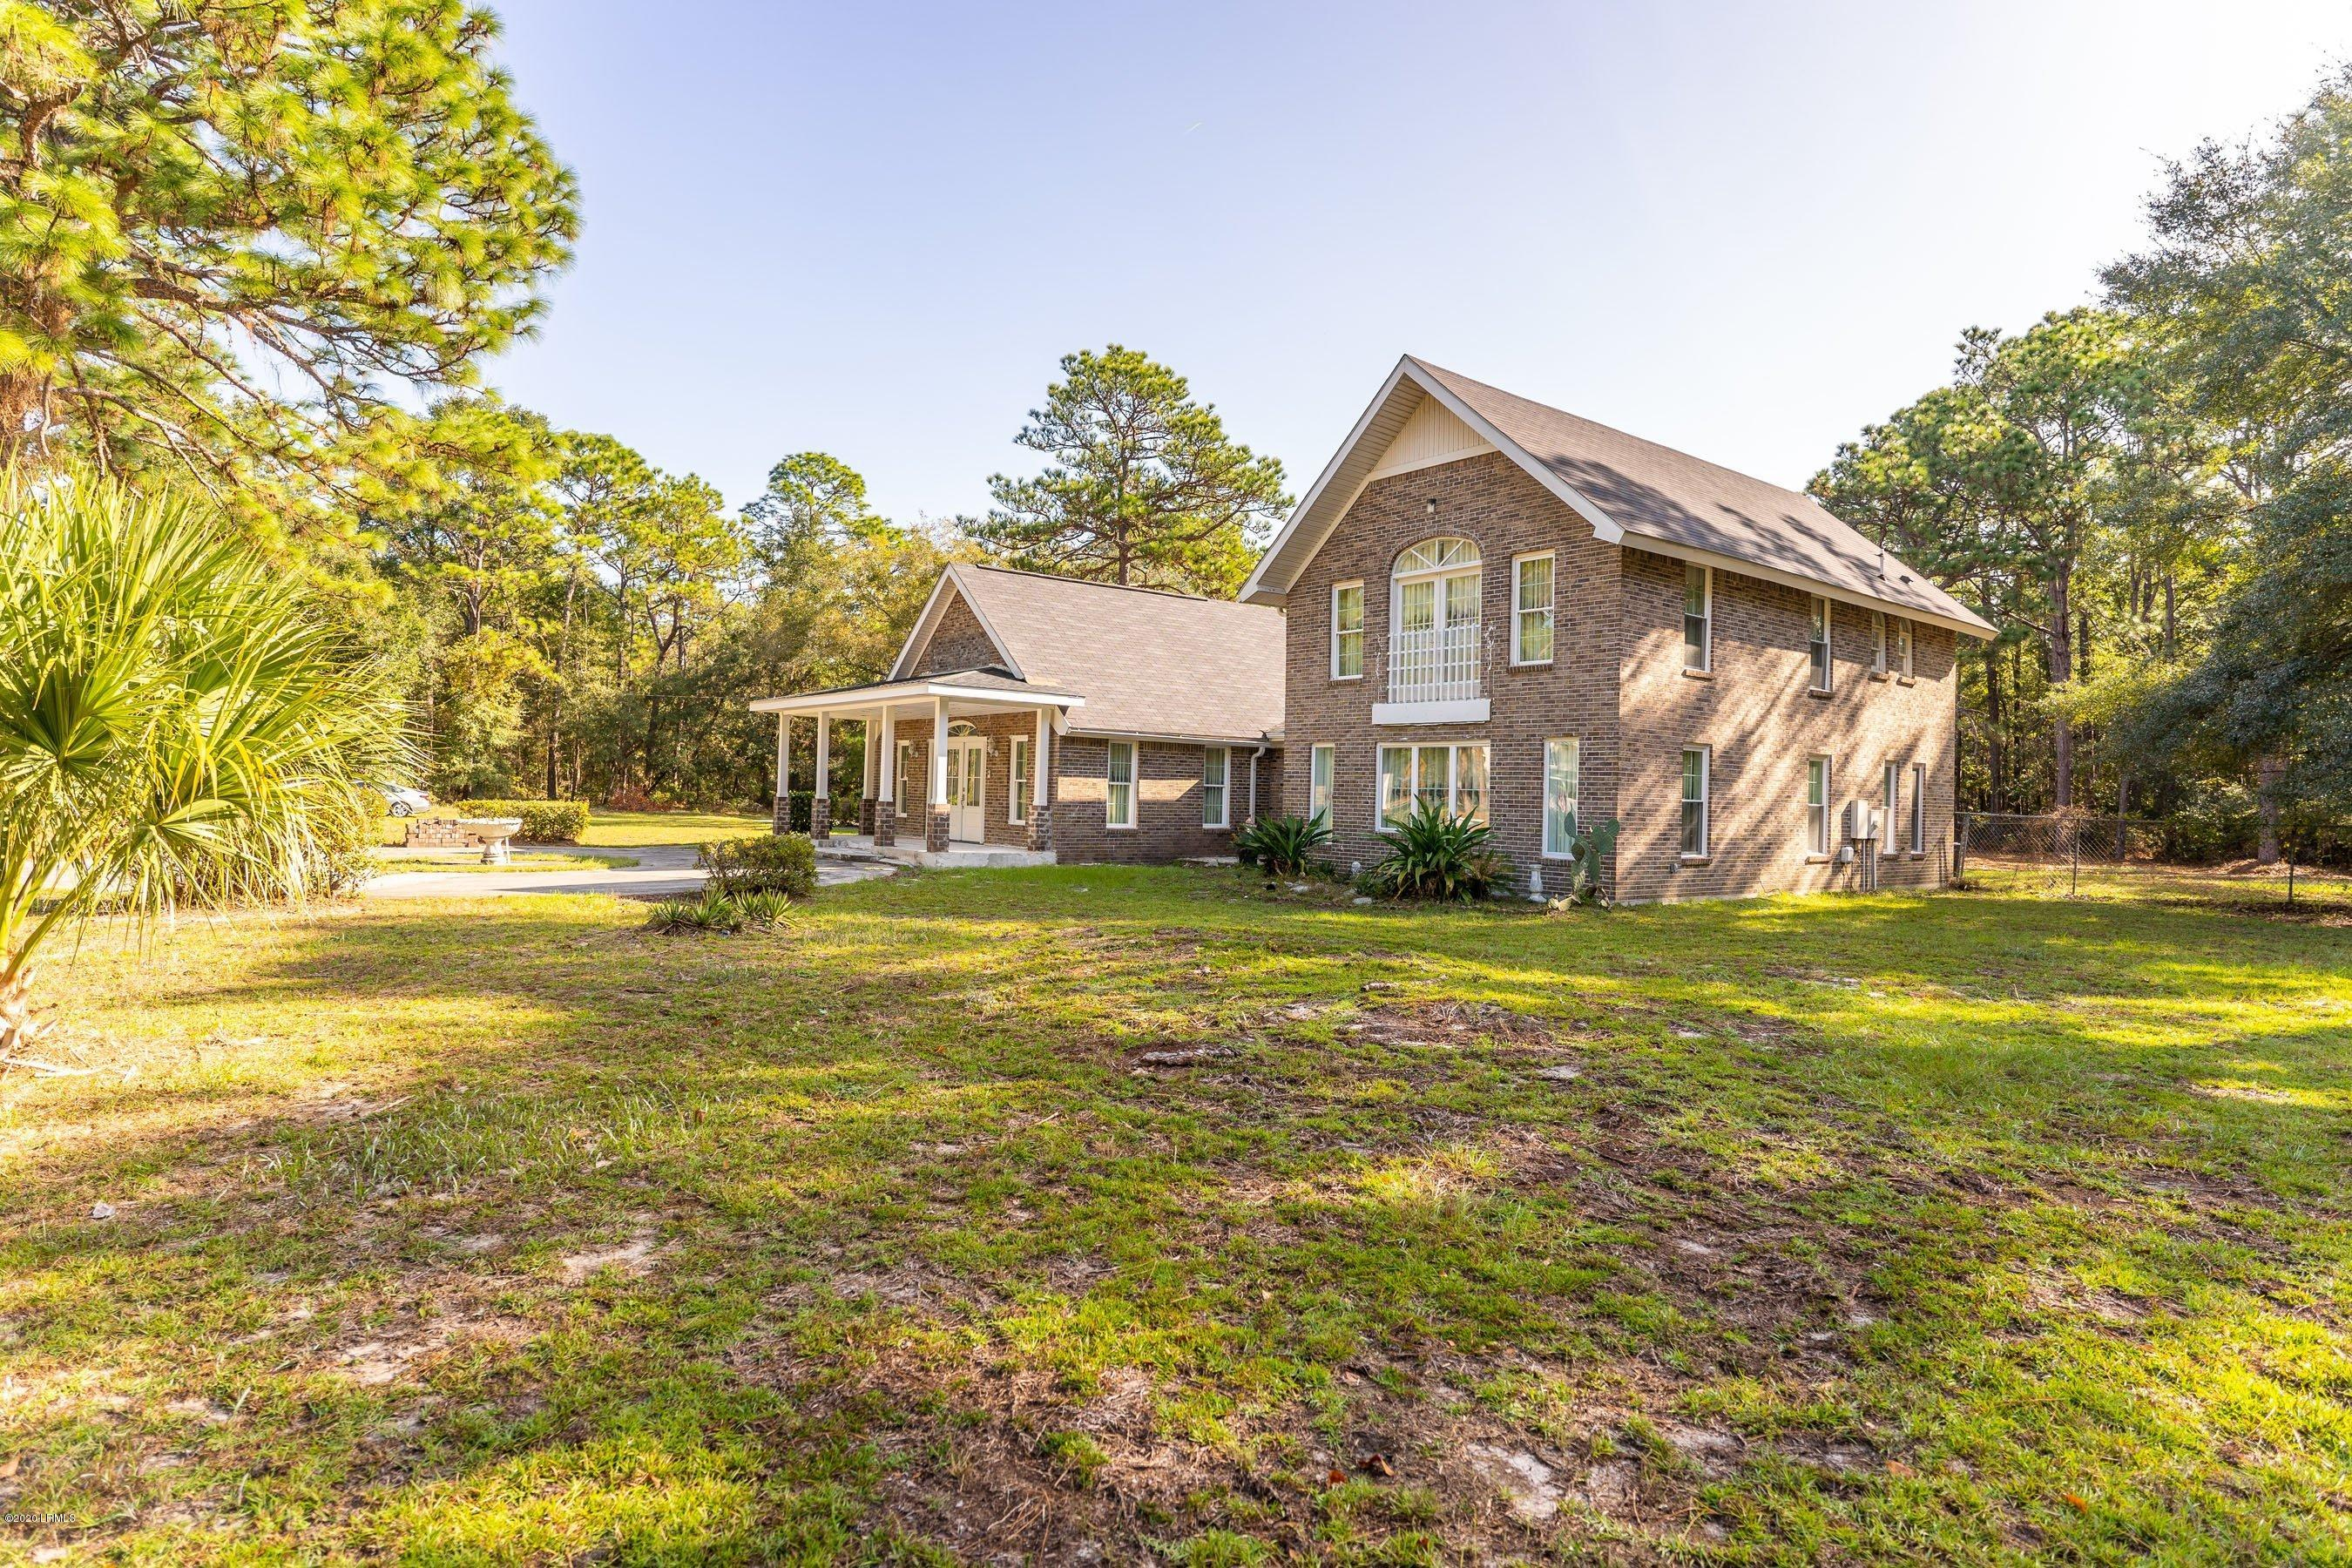 Photo of 508 Sams Point Road, Beaufort, SC 29907